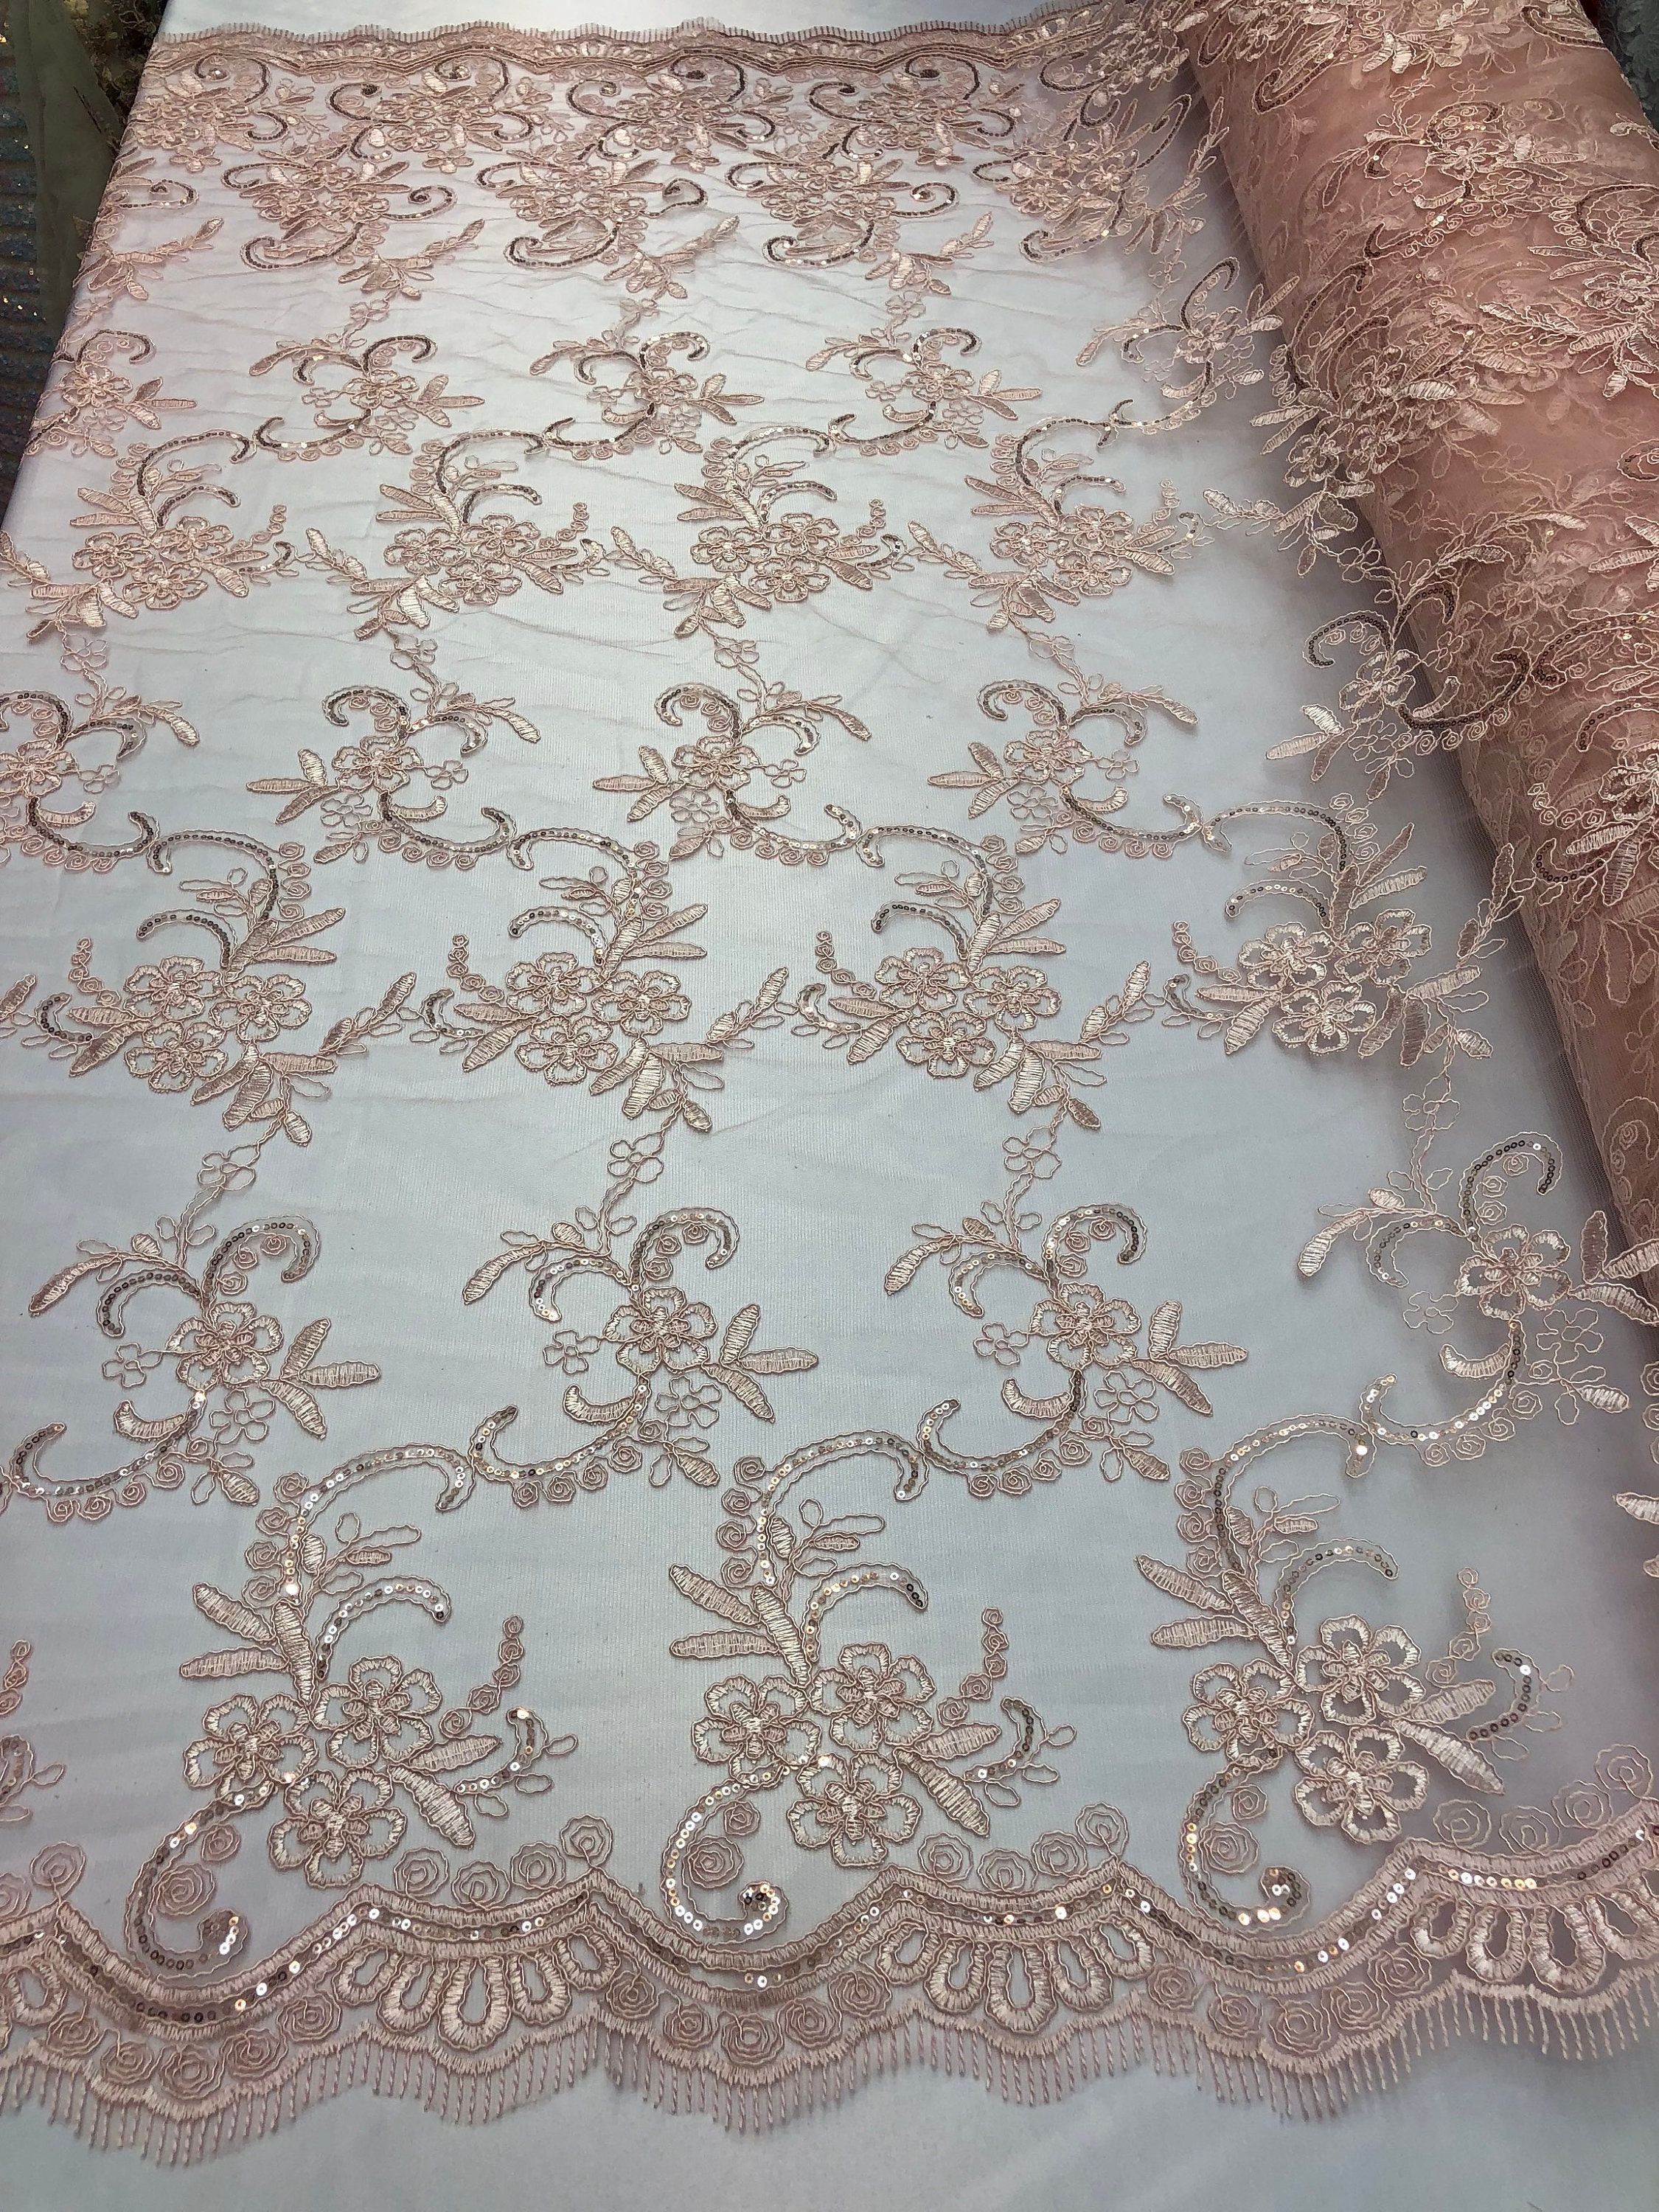 Bridal Pink Lace Fabric By The Yard Corded Flowers Embroidery With